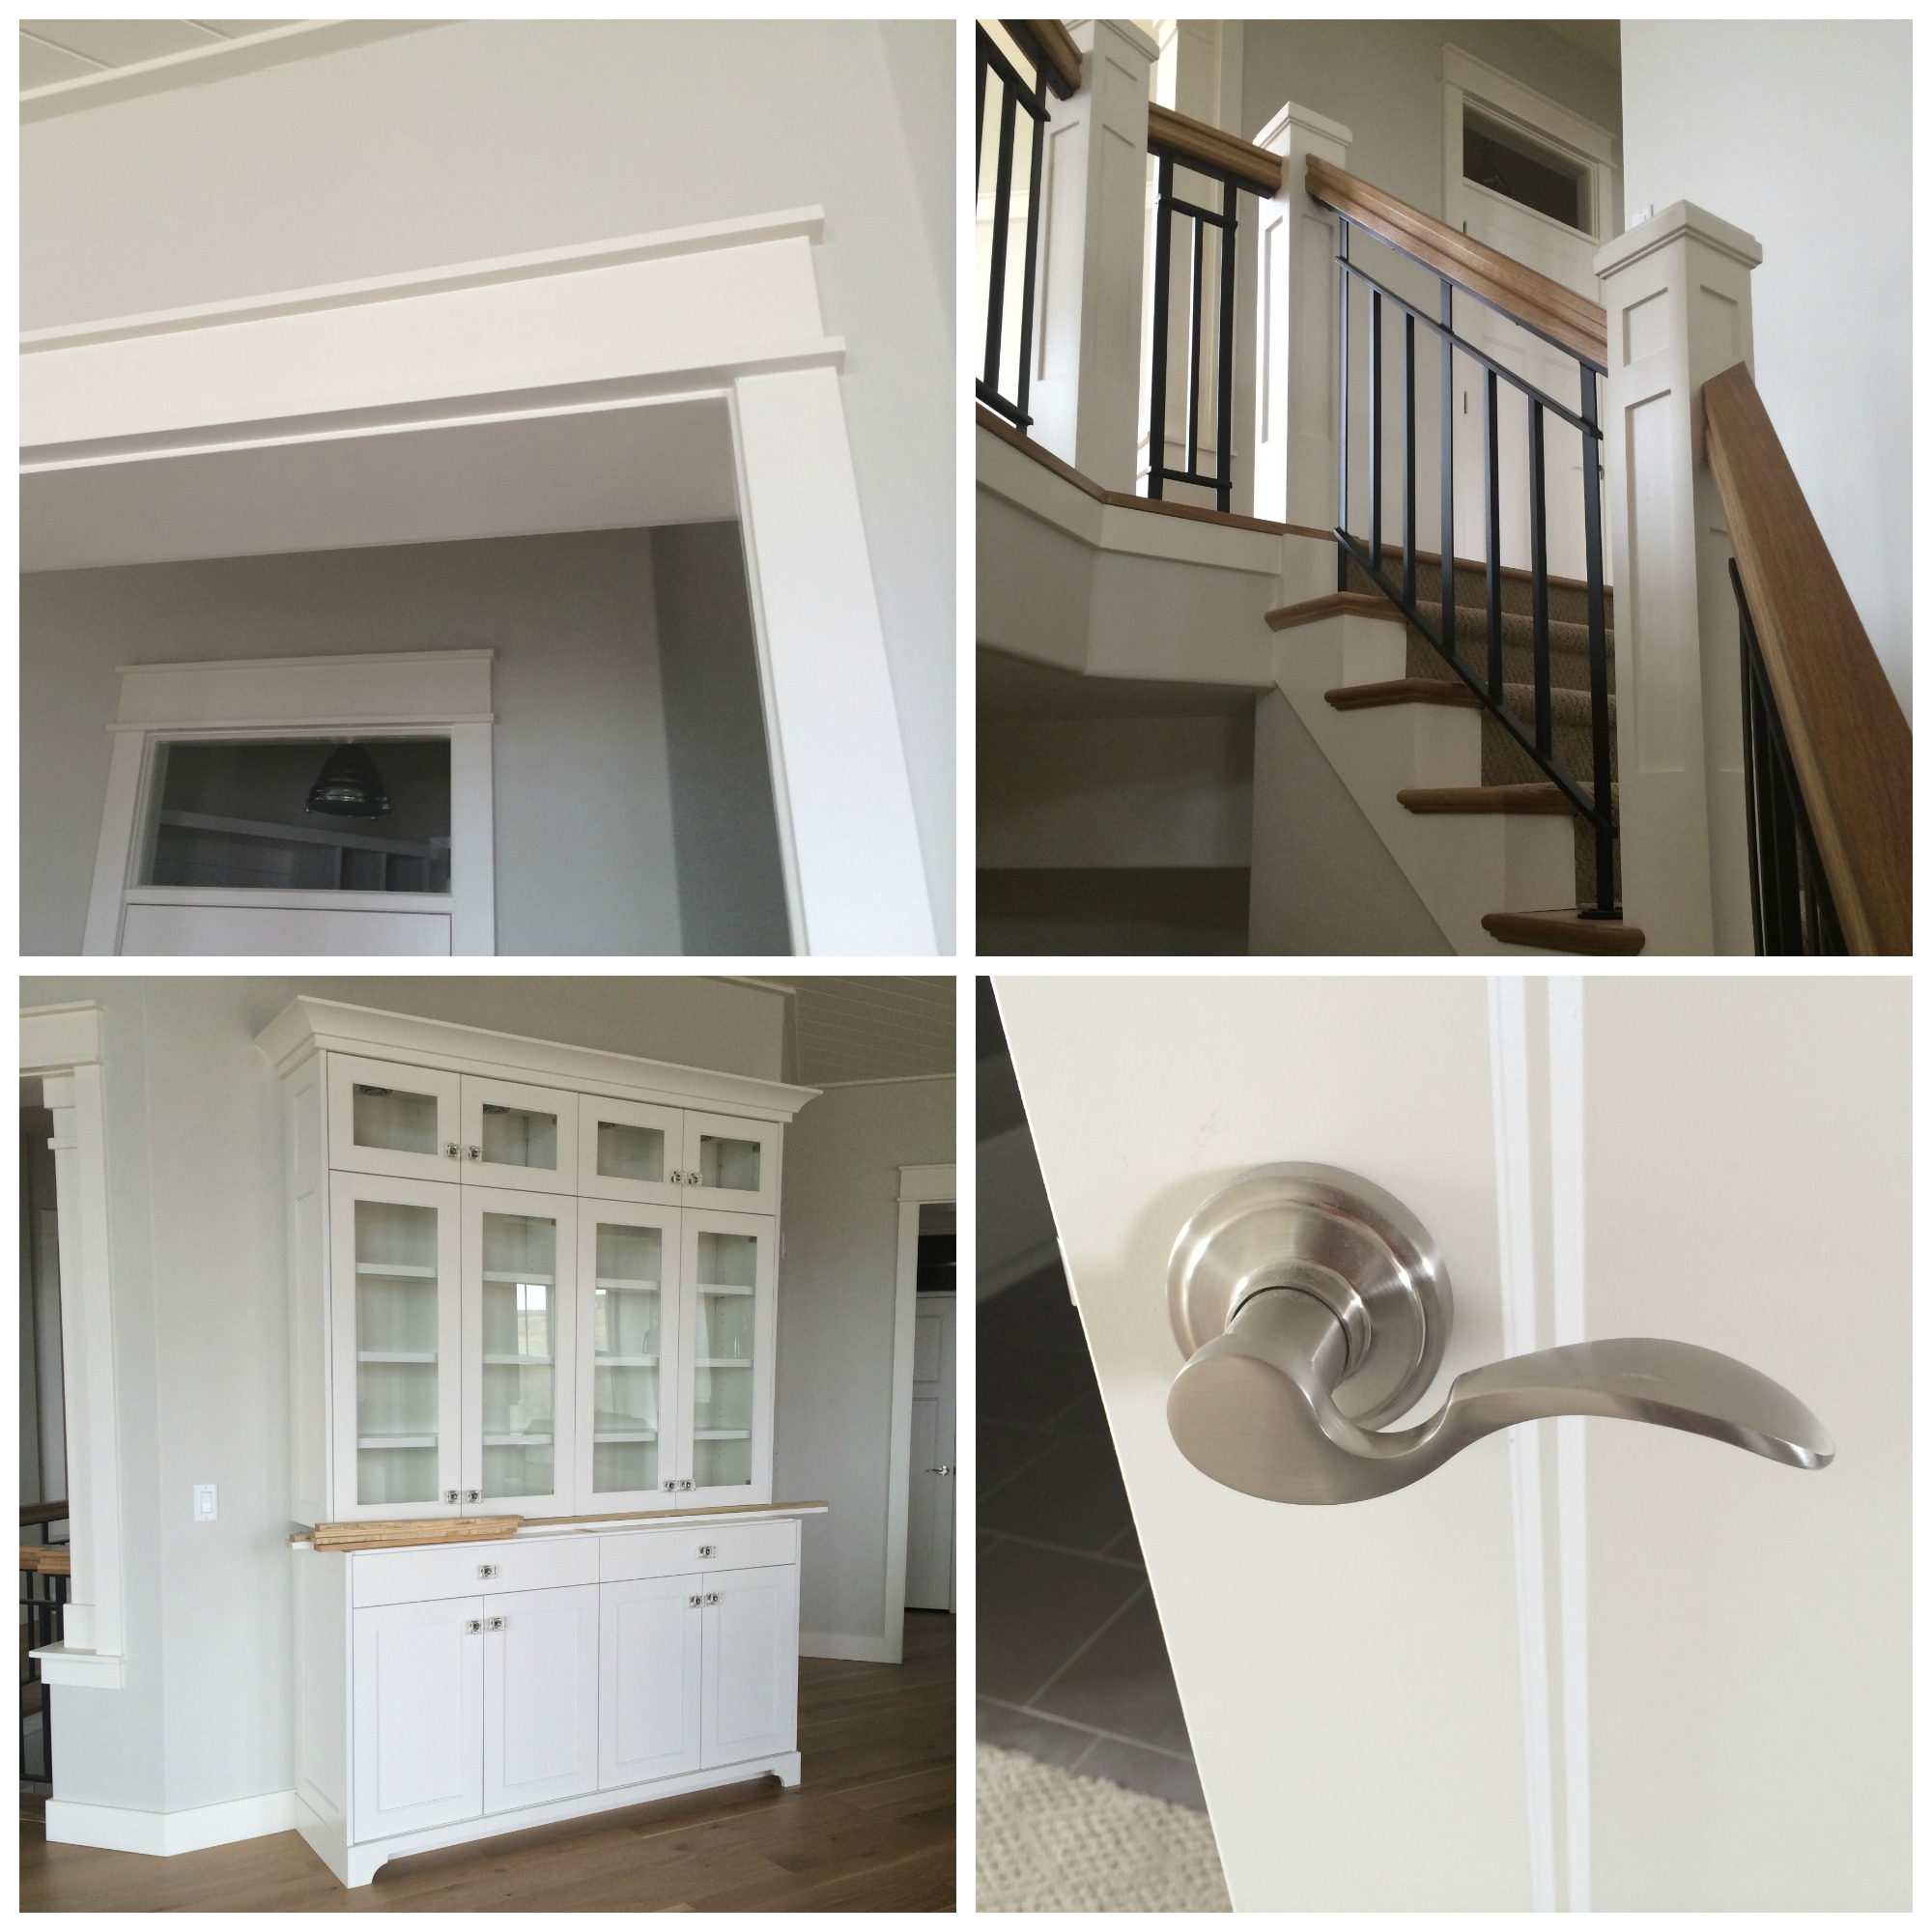 Upper left: A simple trim piece lines the top and bottom of the mission style casing for a more sophisticated look. Transom windows add light above each door frame. Upper right: A two tone, iron railing is anchored by a shaker style newel posts. Tread caps and risers also line the stairs. Bottom left: This custom built hutch, designed for the kitchen, features glass door fronts, crystal hardware, and decorative detailing. Bottom right: Brushed nickel levers were selected for the interior door hardware. Notice the detailed profile of the door panel.